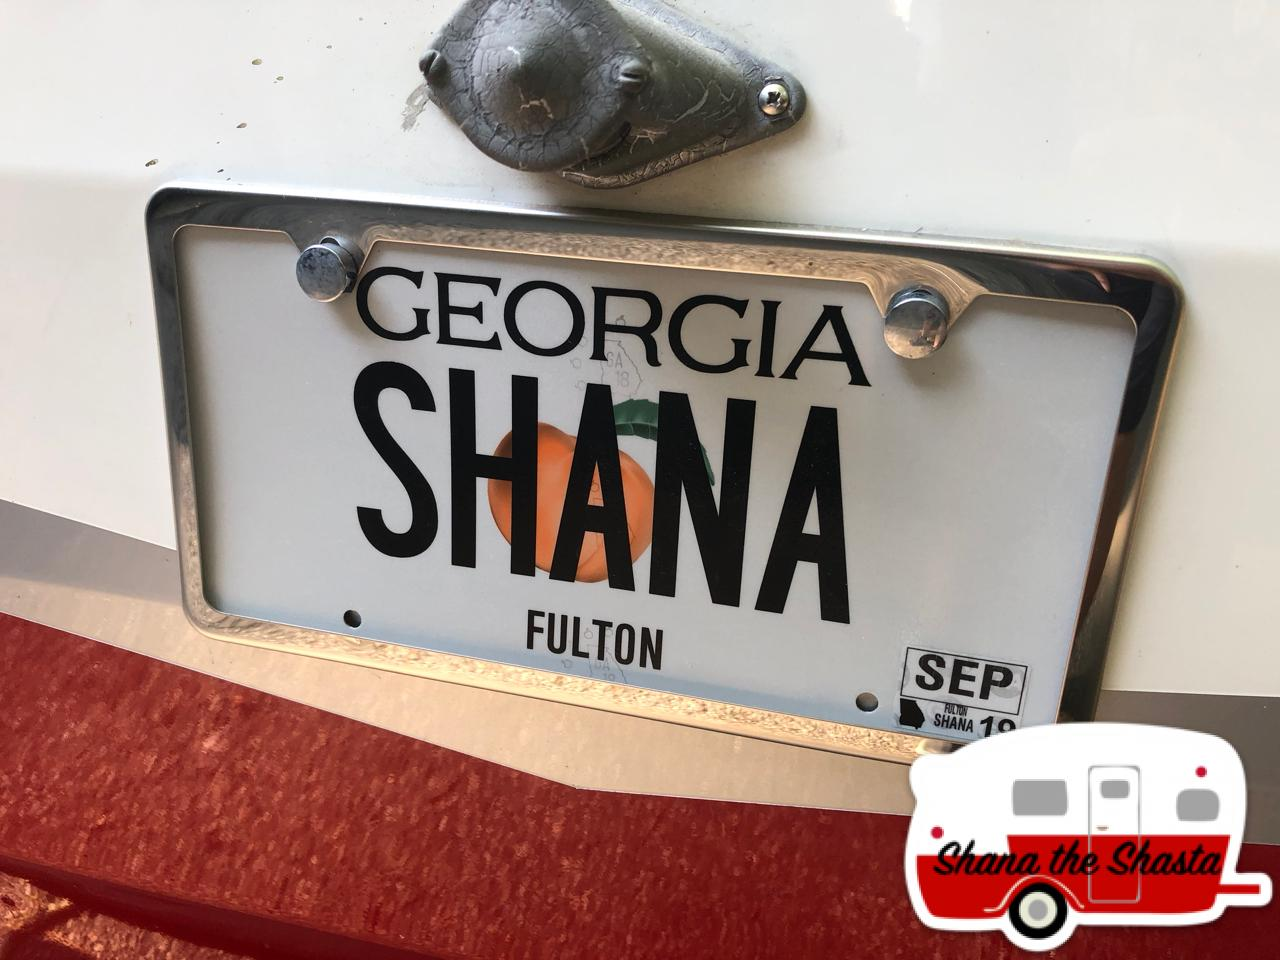 personalized license plate retro camper 2